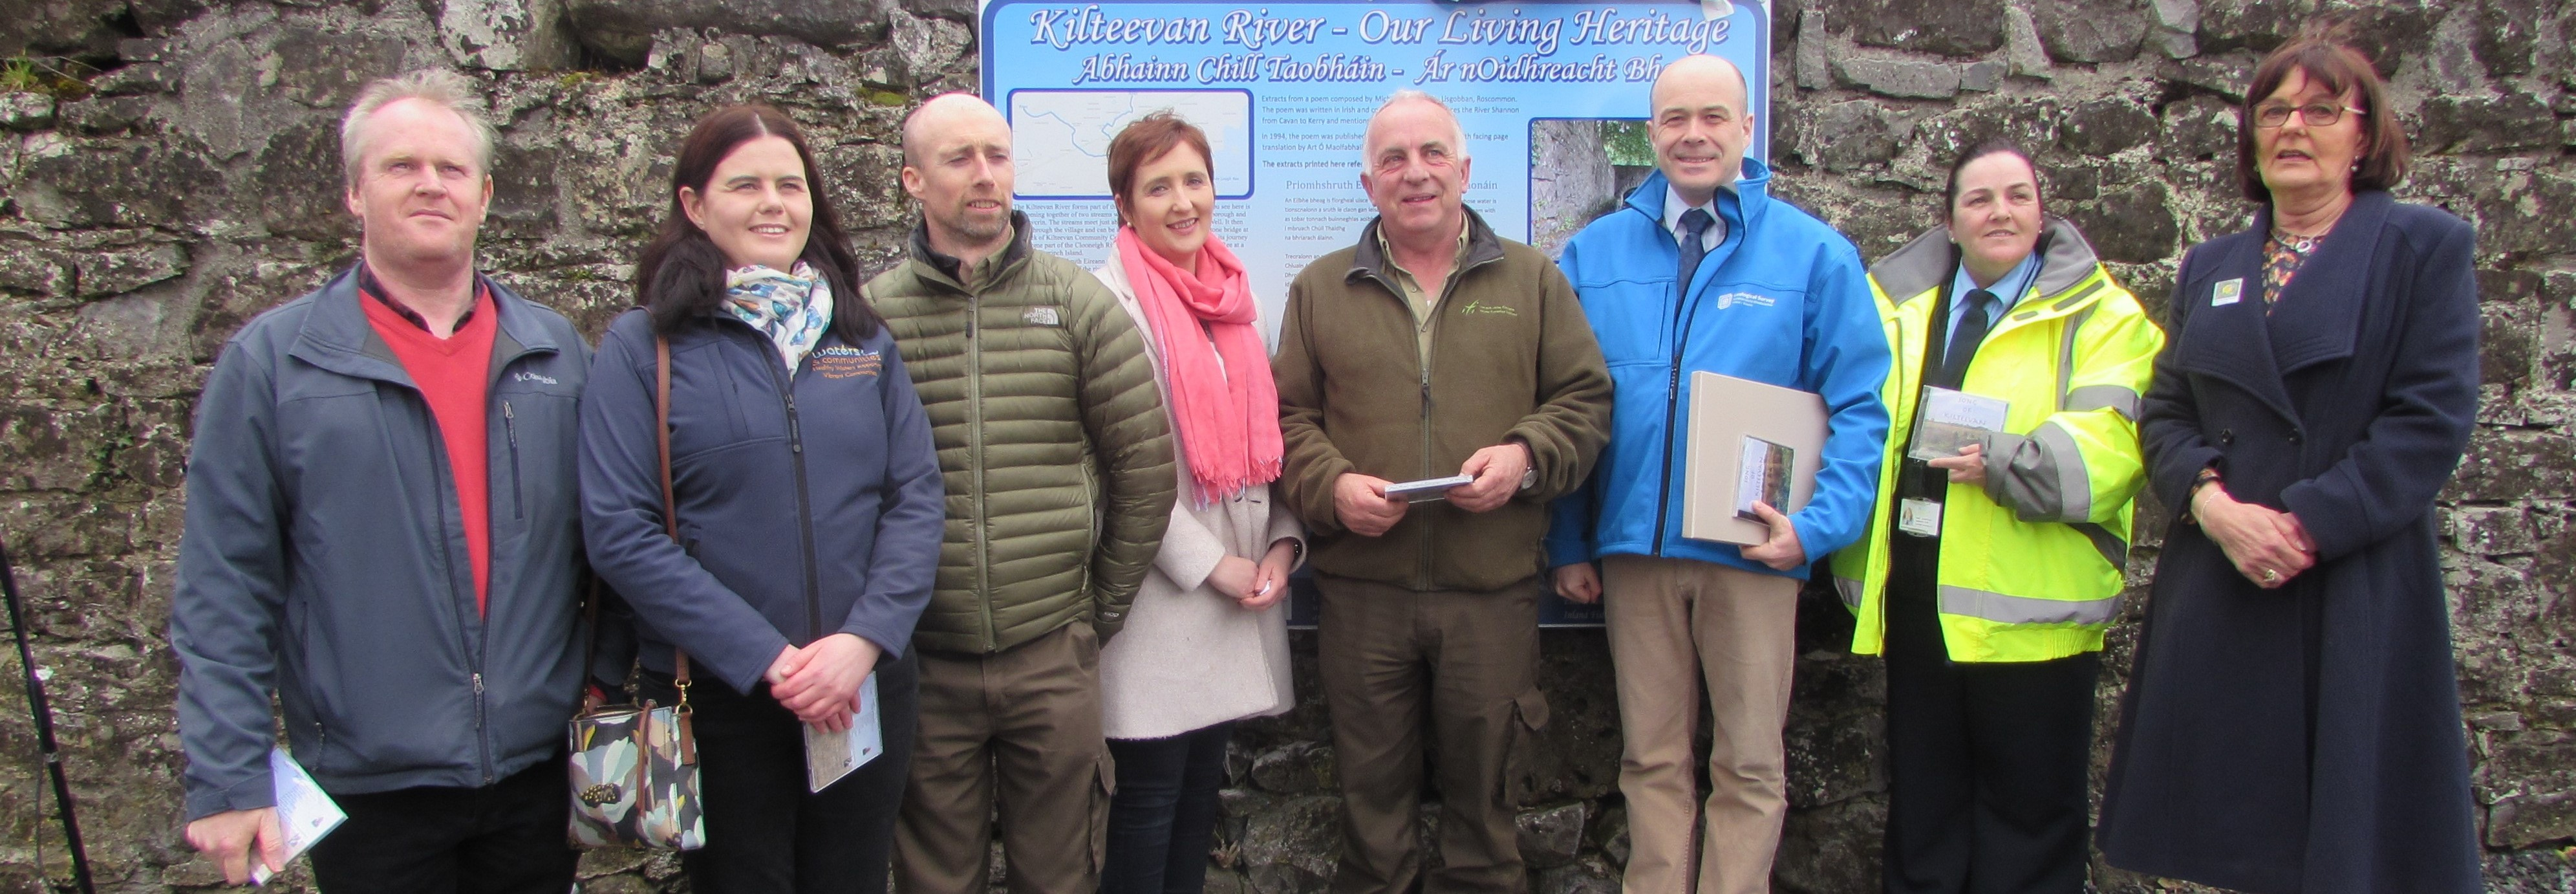 Agencies Involved in Kilteevan River Project with Minister Naughton Niall Cribbon National Parks and Wildlife Service, Catherine Seale Water and Community Office, Oisin Naughton Inland Fisheries Ireland, Marguerite Croghan Kilteevan Tidy Towns ,John Devaney Inland Fisheries Ireland, Denis Naughton, Minister for Communications Climate Acton and Environment ,Annette Donlon Roscommon Co. Council, Eileen Fahey, Kilteevan Tidy Towns.